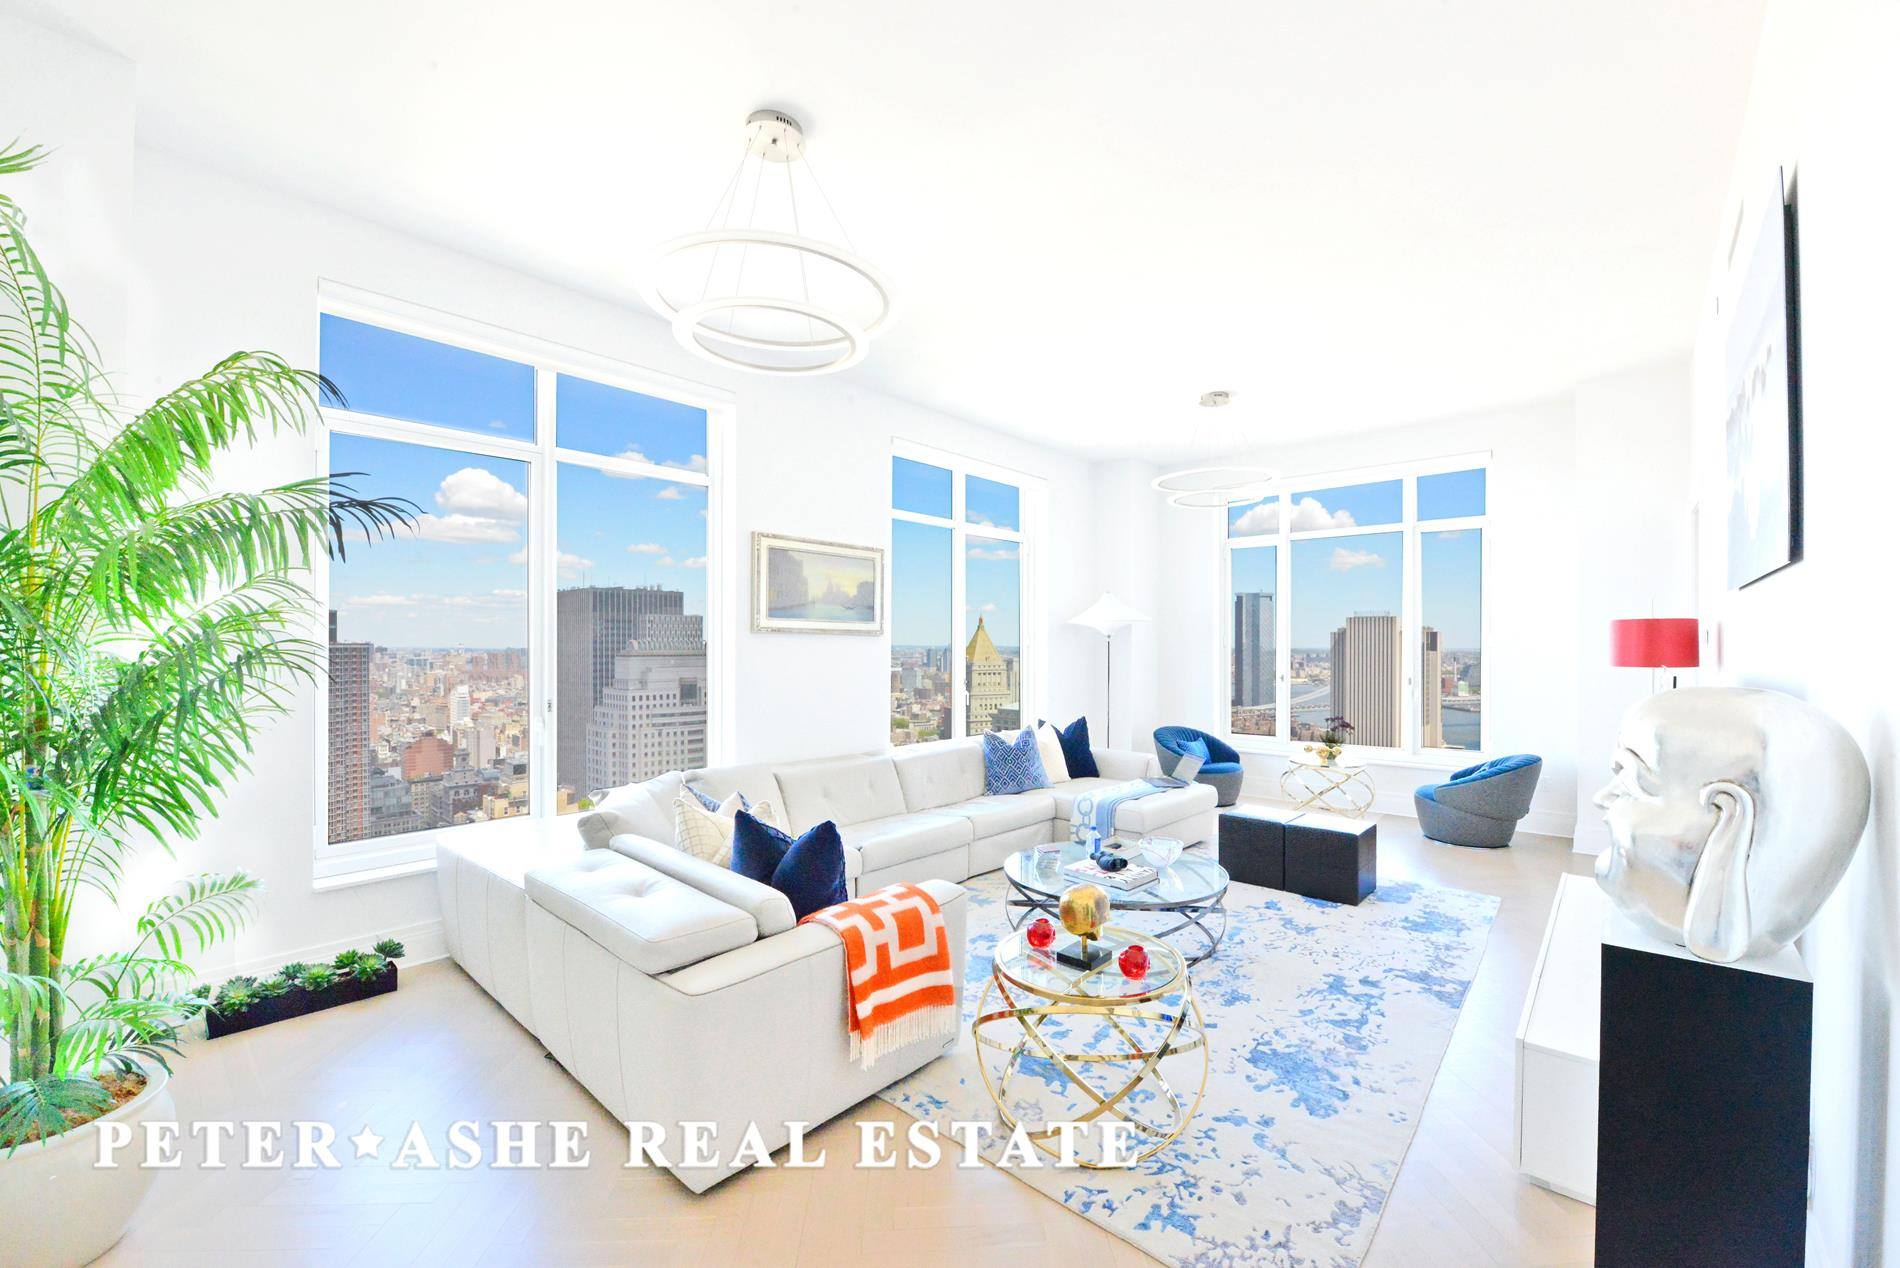 This stunning, 3 bedroom, 3.5 bath residence sits on the northeast corner enjoying views of the Midtown skyline and East River. A windowed Eat-In Kitchen complements the Living/Dining Room. The Master Bedroom Suite features 2 large closets and a 5-fixture bathroom. Welcome to 5-star living at 30 Park Place, Four Seasons Private Residences New York, Downtown. Developed by visionary Silverstein Properties, Inc. Masterfully designed by Robert A.M. Stern Architects. Services by legendary Four Seasons Hotels and Resorts. With residences beginning on the 39th floor, the sweeping views are unparalleled. Residents may enjoy access to Four Seasons Hotel amenities including a spa and salon facilities, 75' swimming pool, attended parking garage, restaurant, bar and lounge, ballroom facilities, and meeting rooms, as well as a comprehensive suite of a la carte services. The 38th floor is devoted to private residential amenities including a fitness center and yoga studio, private dining room, conservatory and lounge with access to loggias, Roto-designed kid's playroom, and screening room. Interior finishes include solid oak wood flooring with herringbone pattern in the formal rooms, Bilotta rift-cut oak kitchen cabinetry, Gaggenau appliances, marble bathrooms with Robert A.M. Stern custom-designed vanities. Systems feature ceiling-hung four-pipe fan coil hvac with dedicated zones and pre-wiring for home automation. Storage bin included!